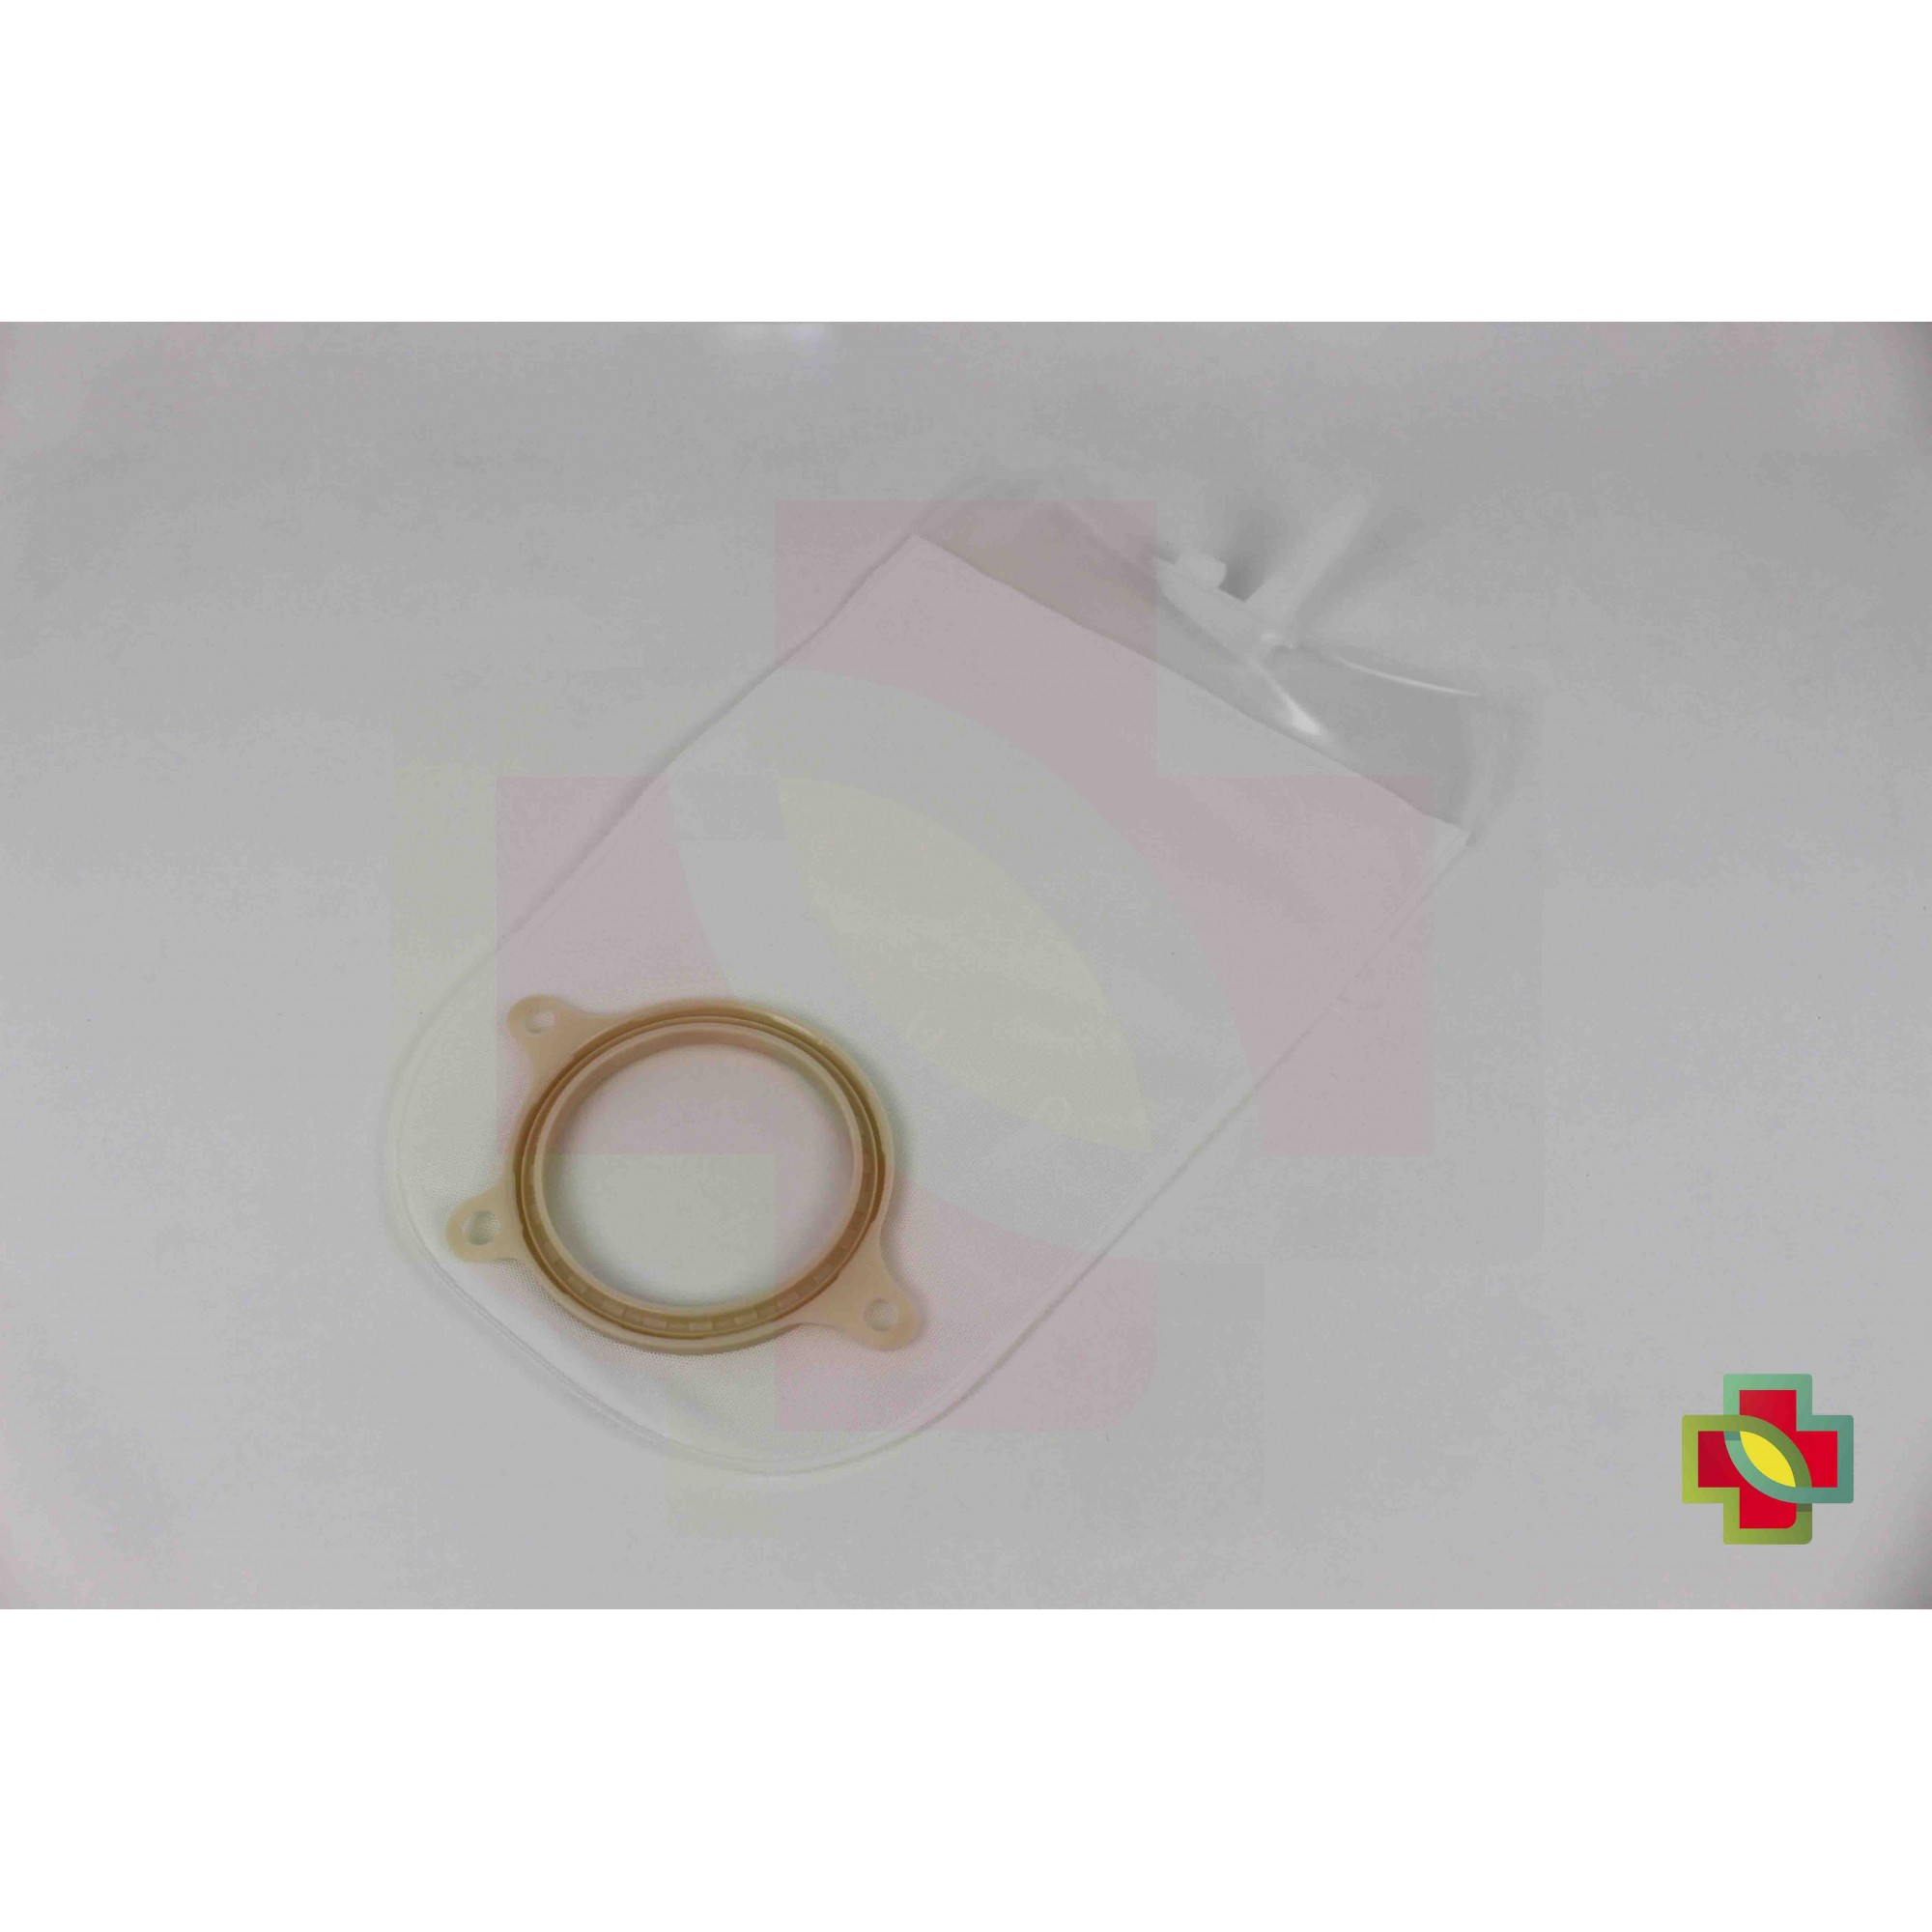 BOLSA DE UROSTOMIA SUR-FIT PLUS ANTI-REFLUXO TRANSP.57MM (C/20) 402551 - CONVATEC